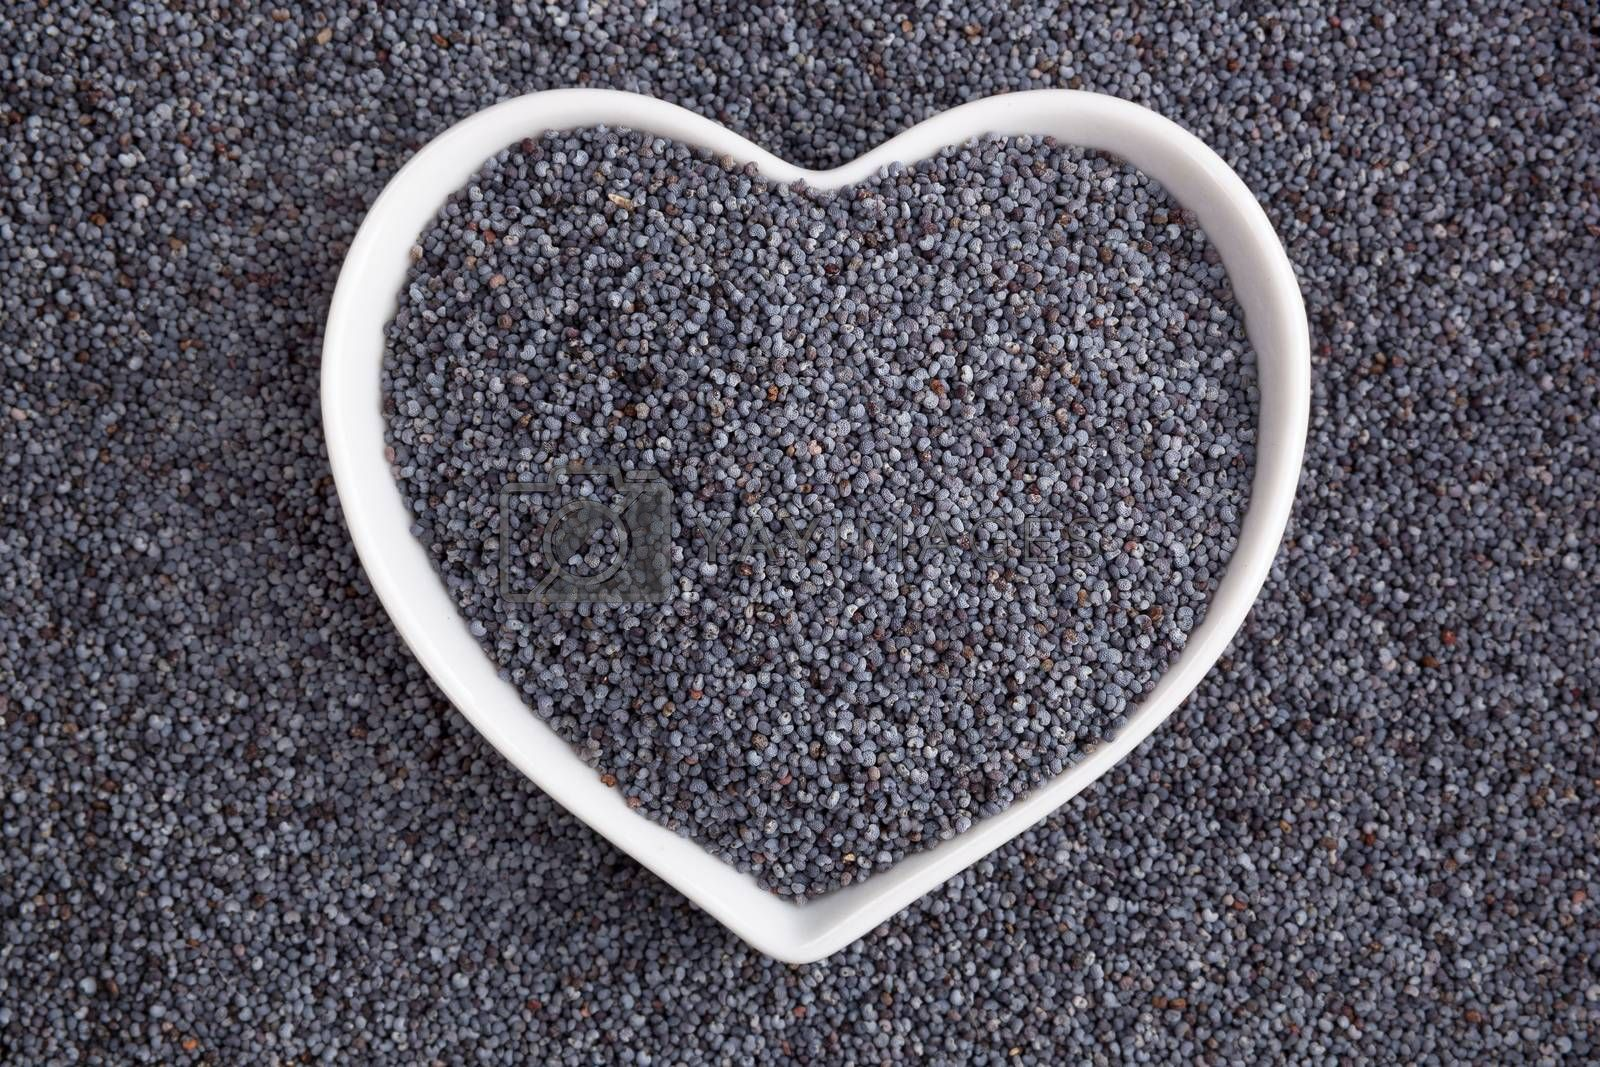 Poppy seed background. Poppy seeds in heart shaped bowl, top view. Healthy eating.